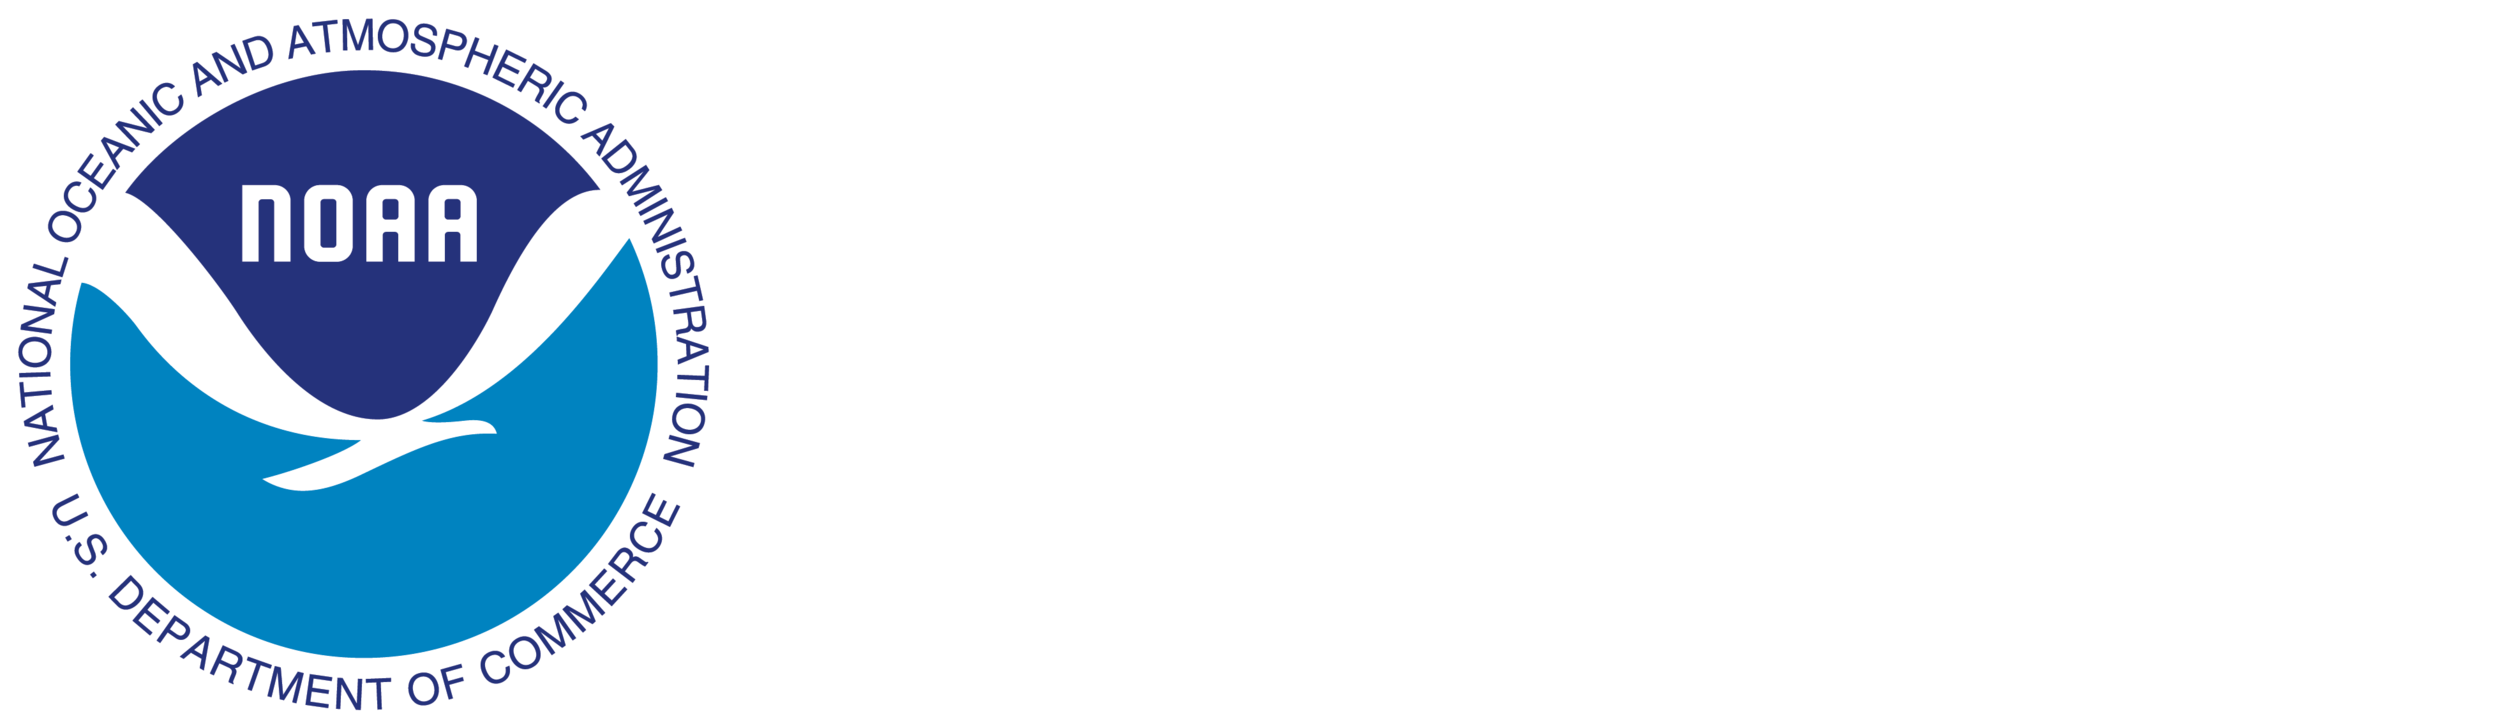 noaa-oer-whitetype.png